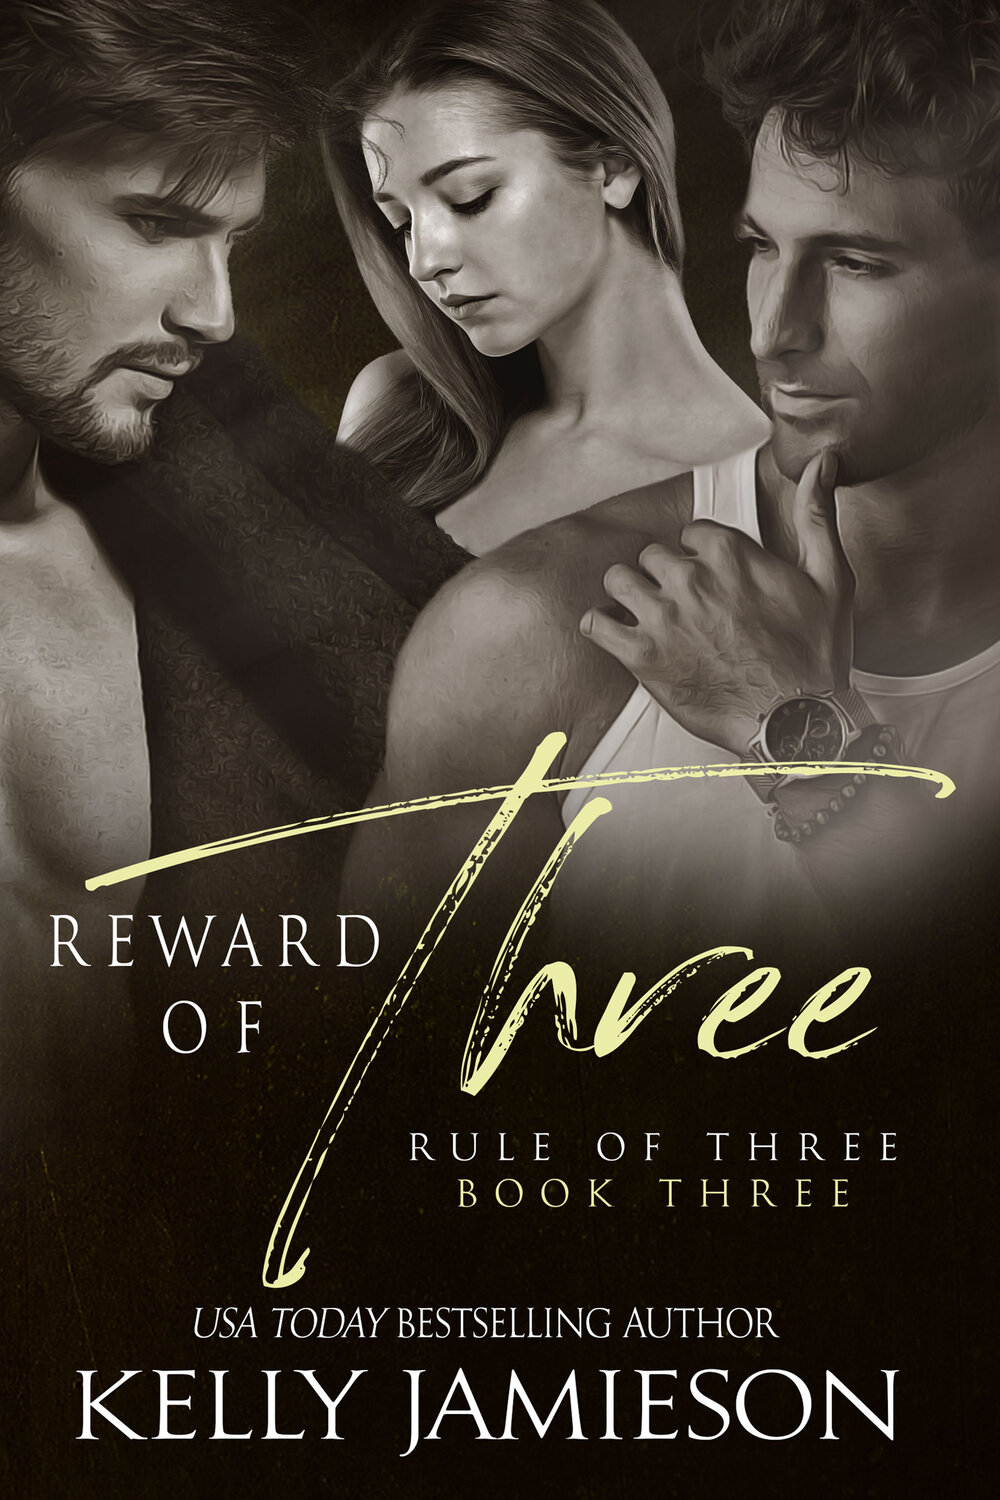 Kelly Jamieson Reward of Three Rule of Three 3.jpg